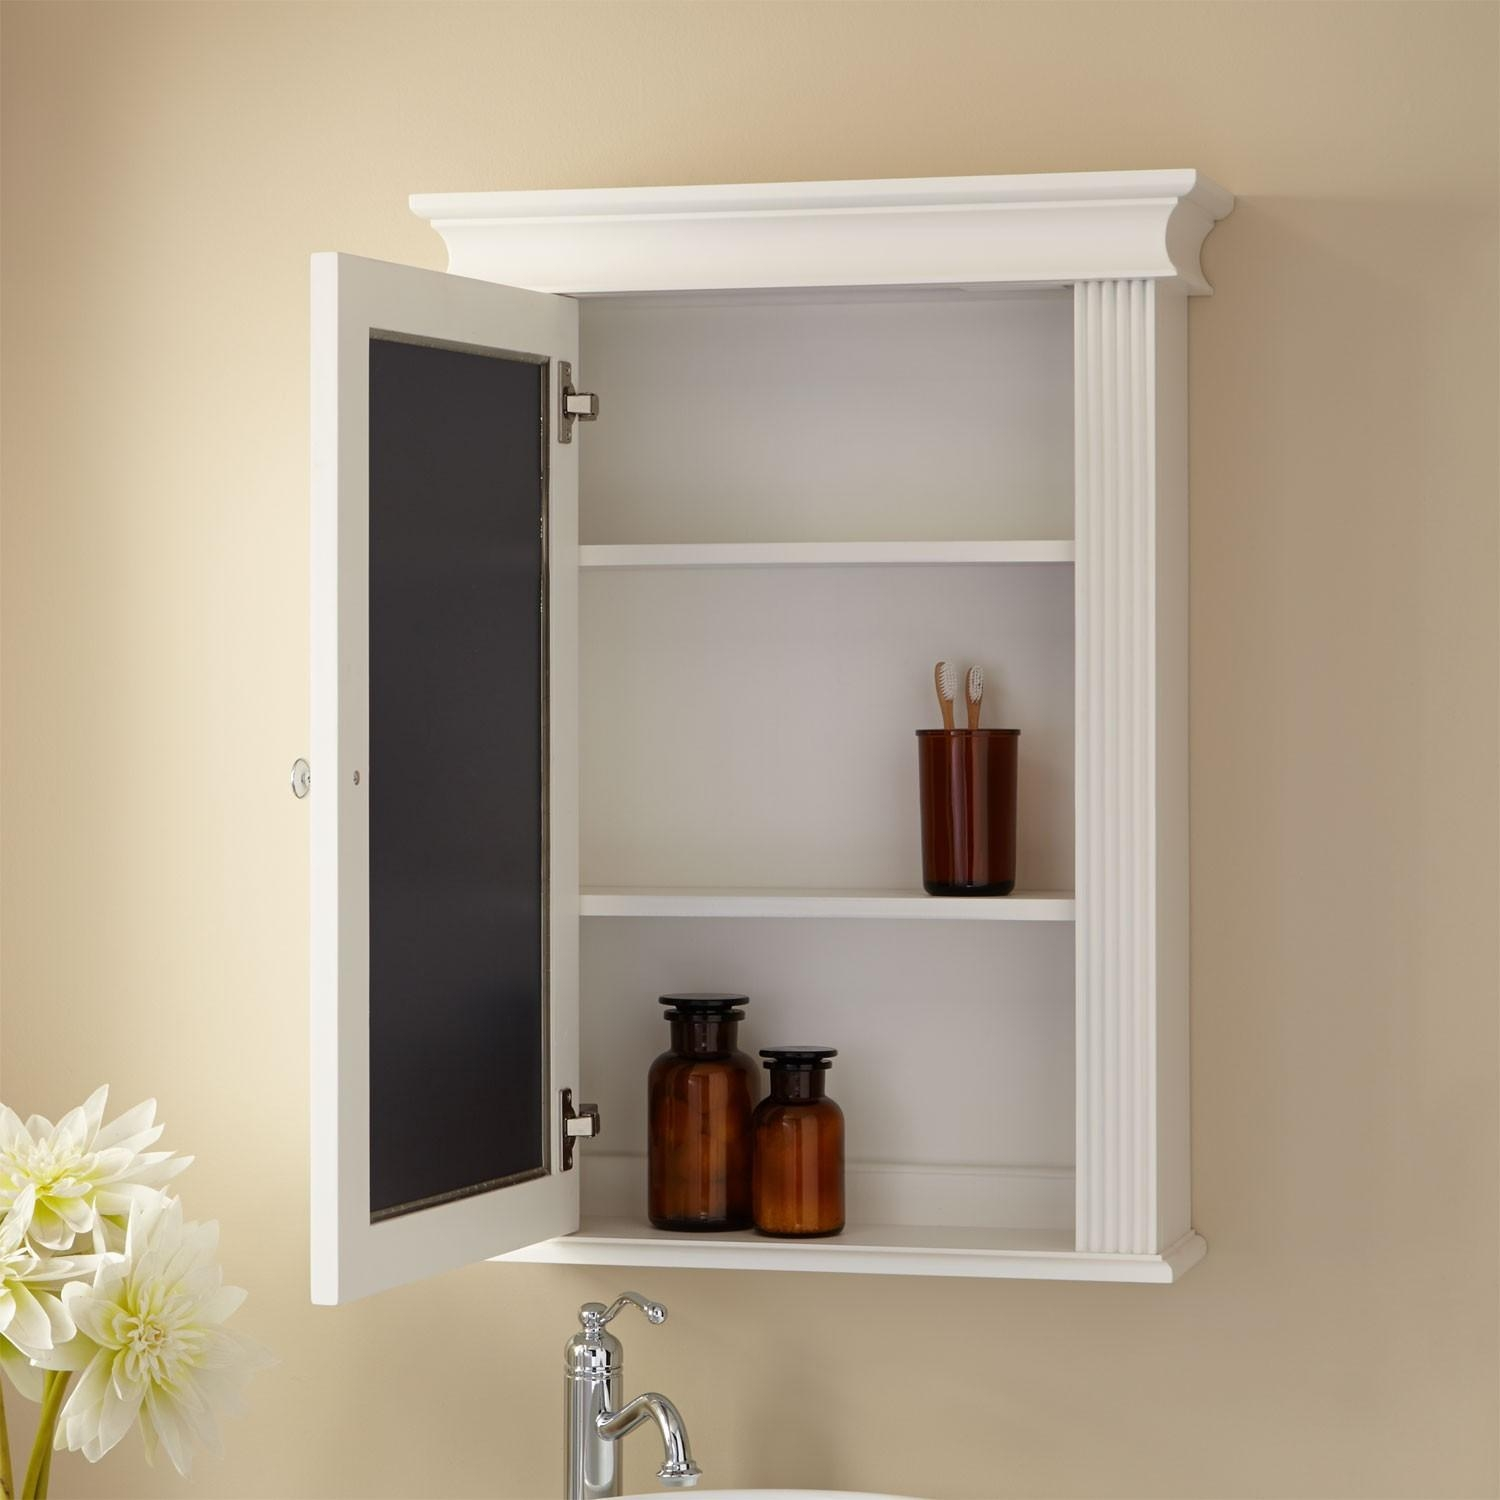 20 photos bathroom vanity mirrors with medicine cabinet - Bathroom mirrors and medicine cabinets ...